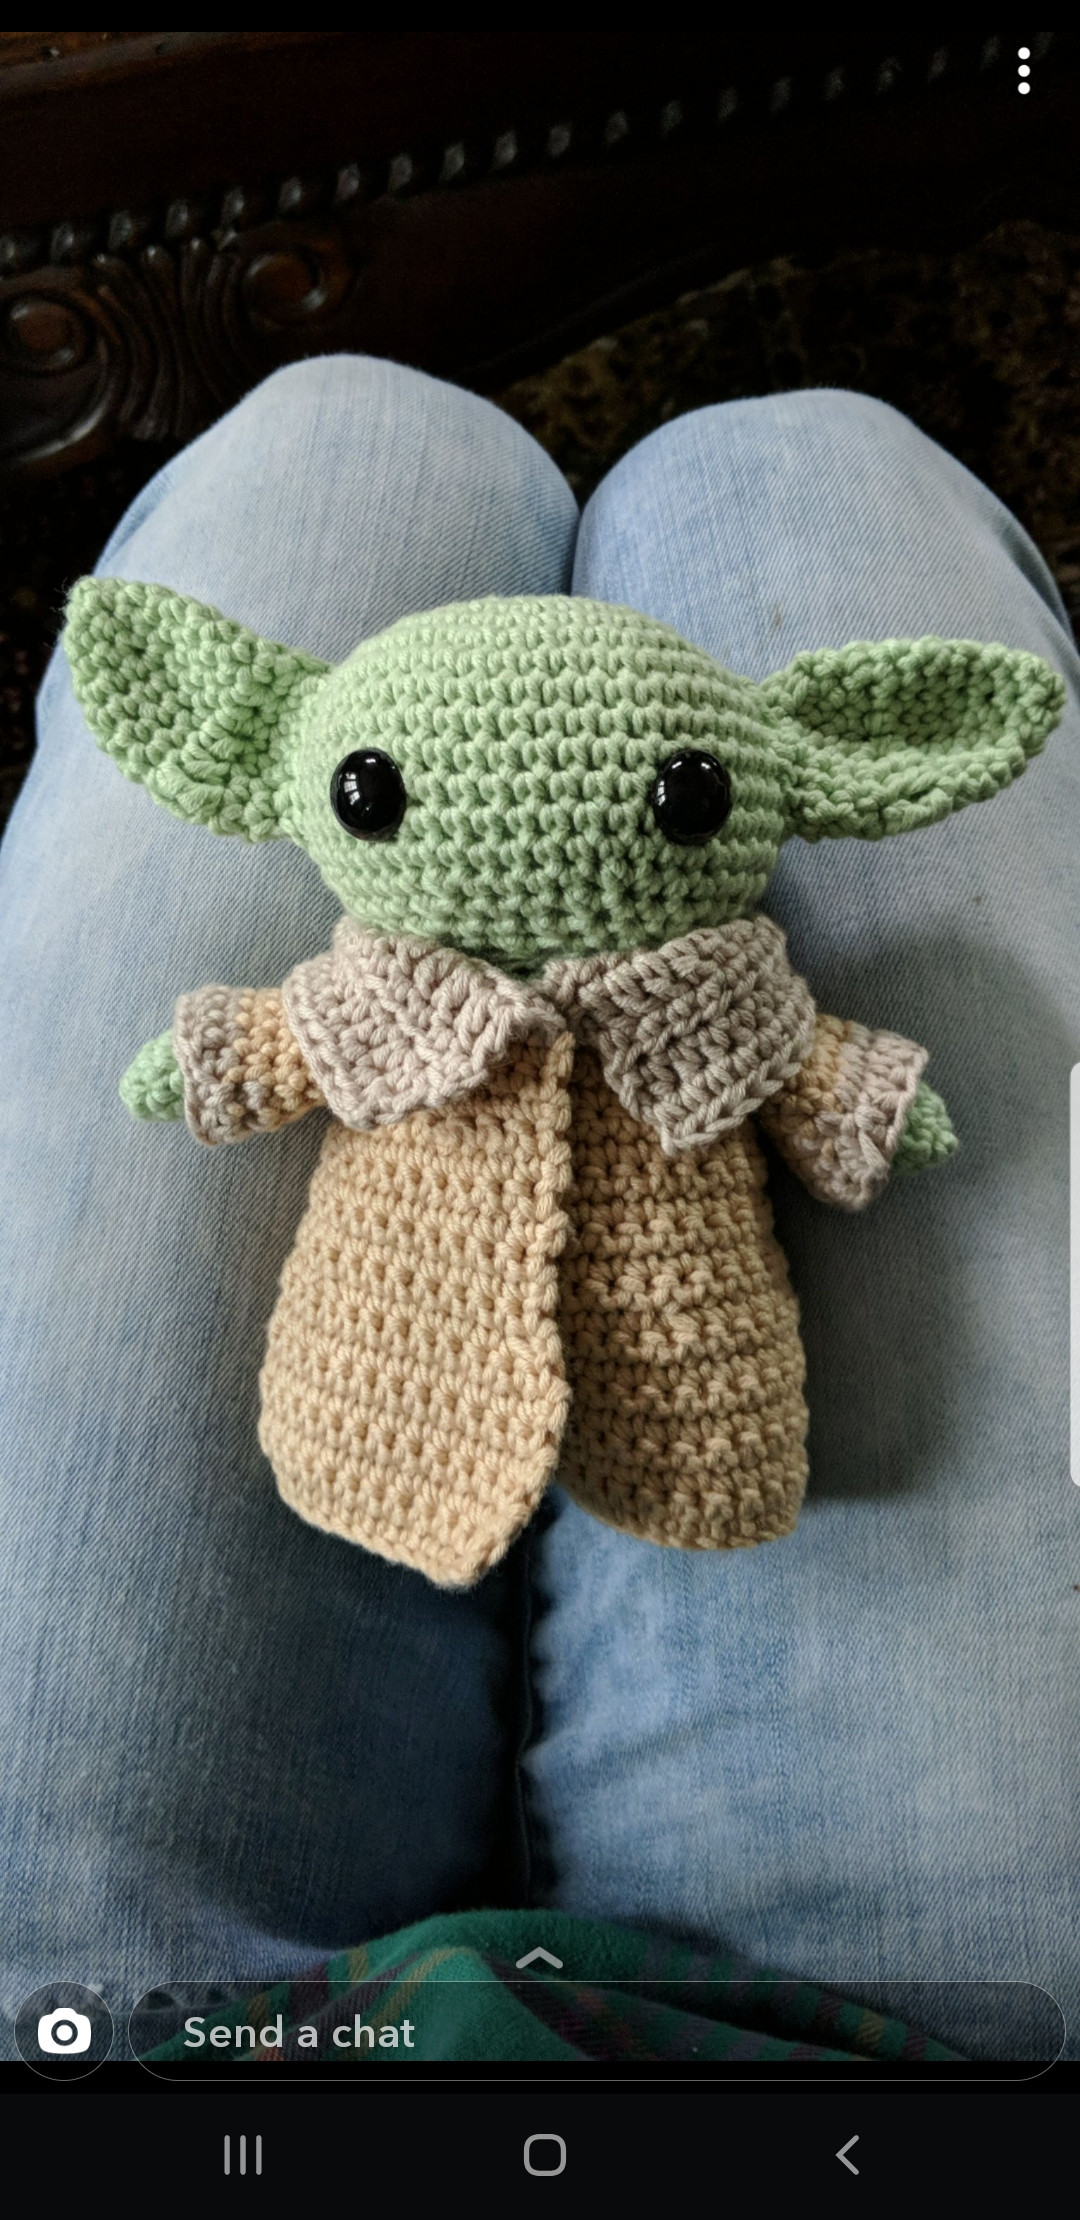 My Wife made me a Baby Yoda!